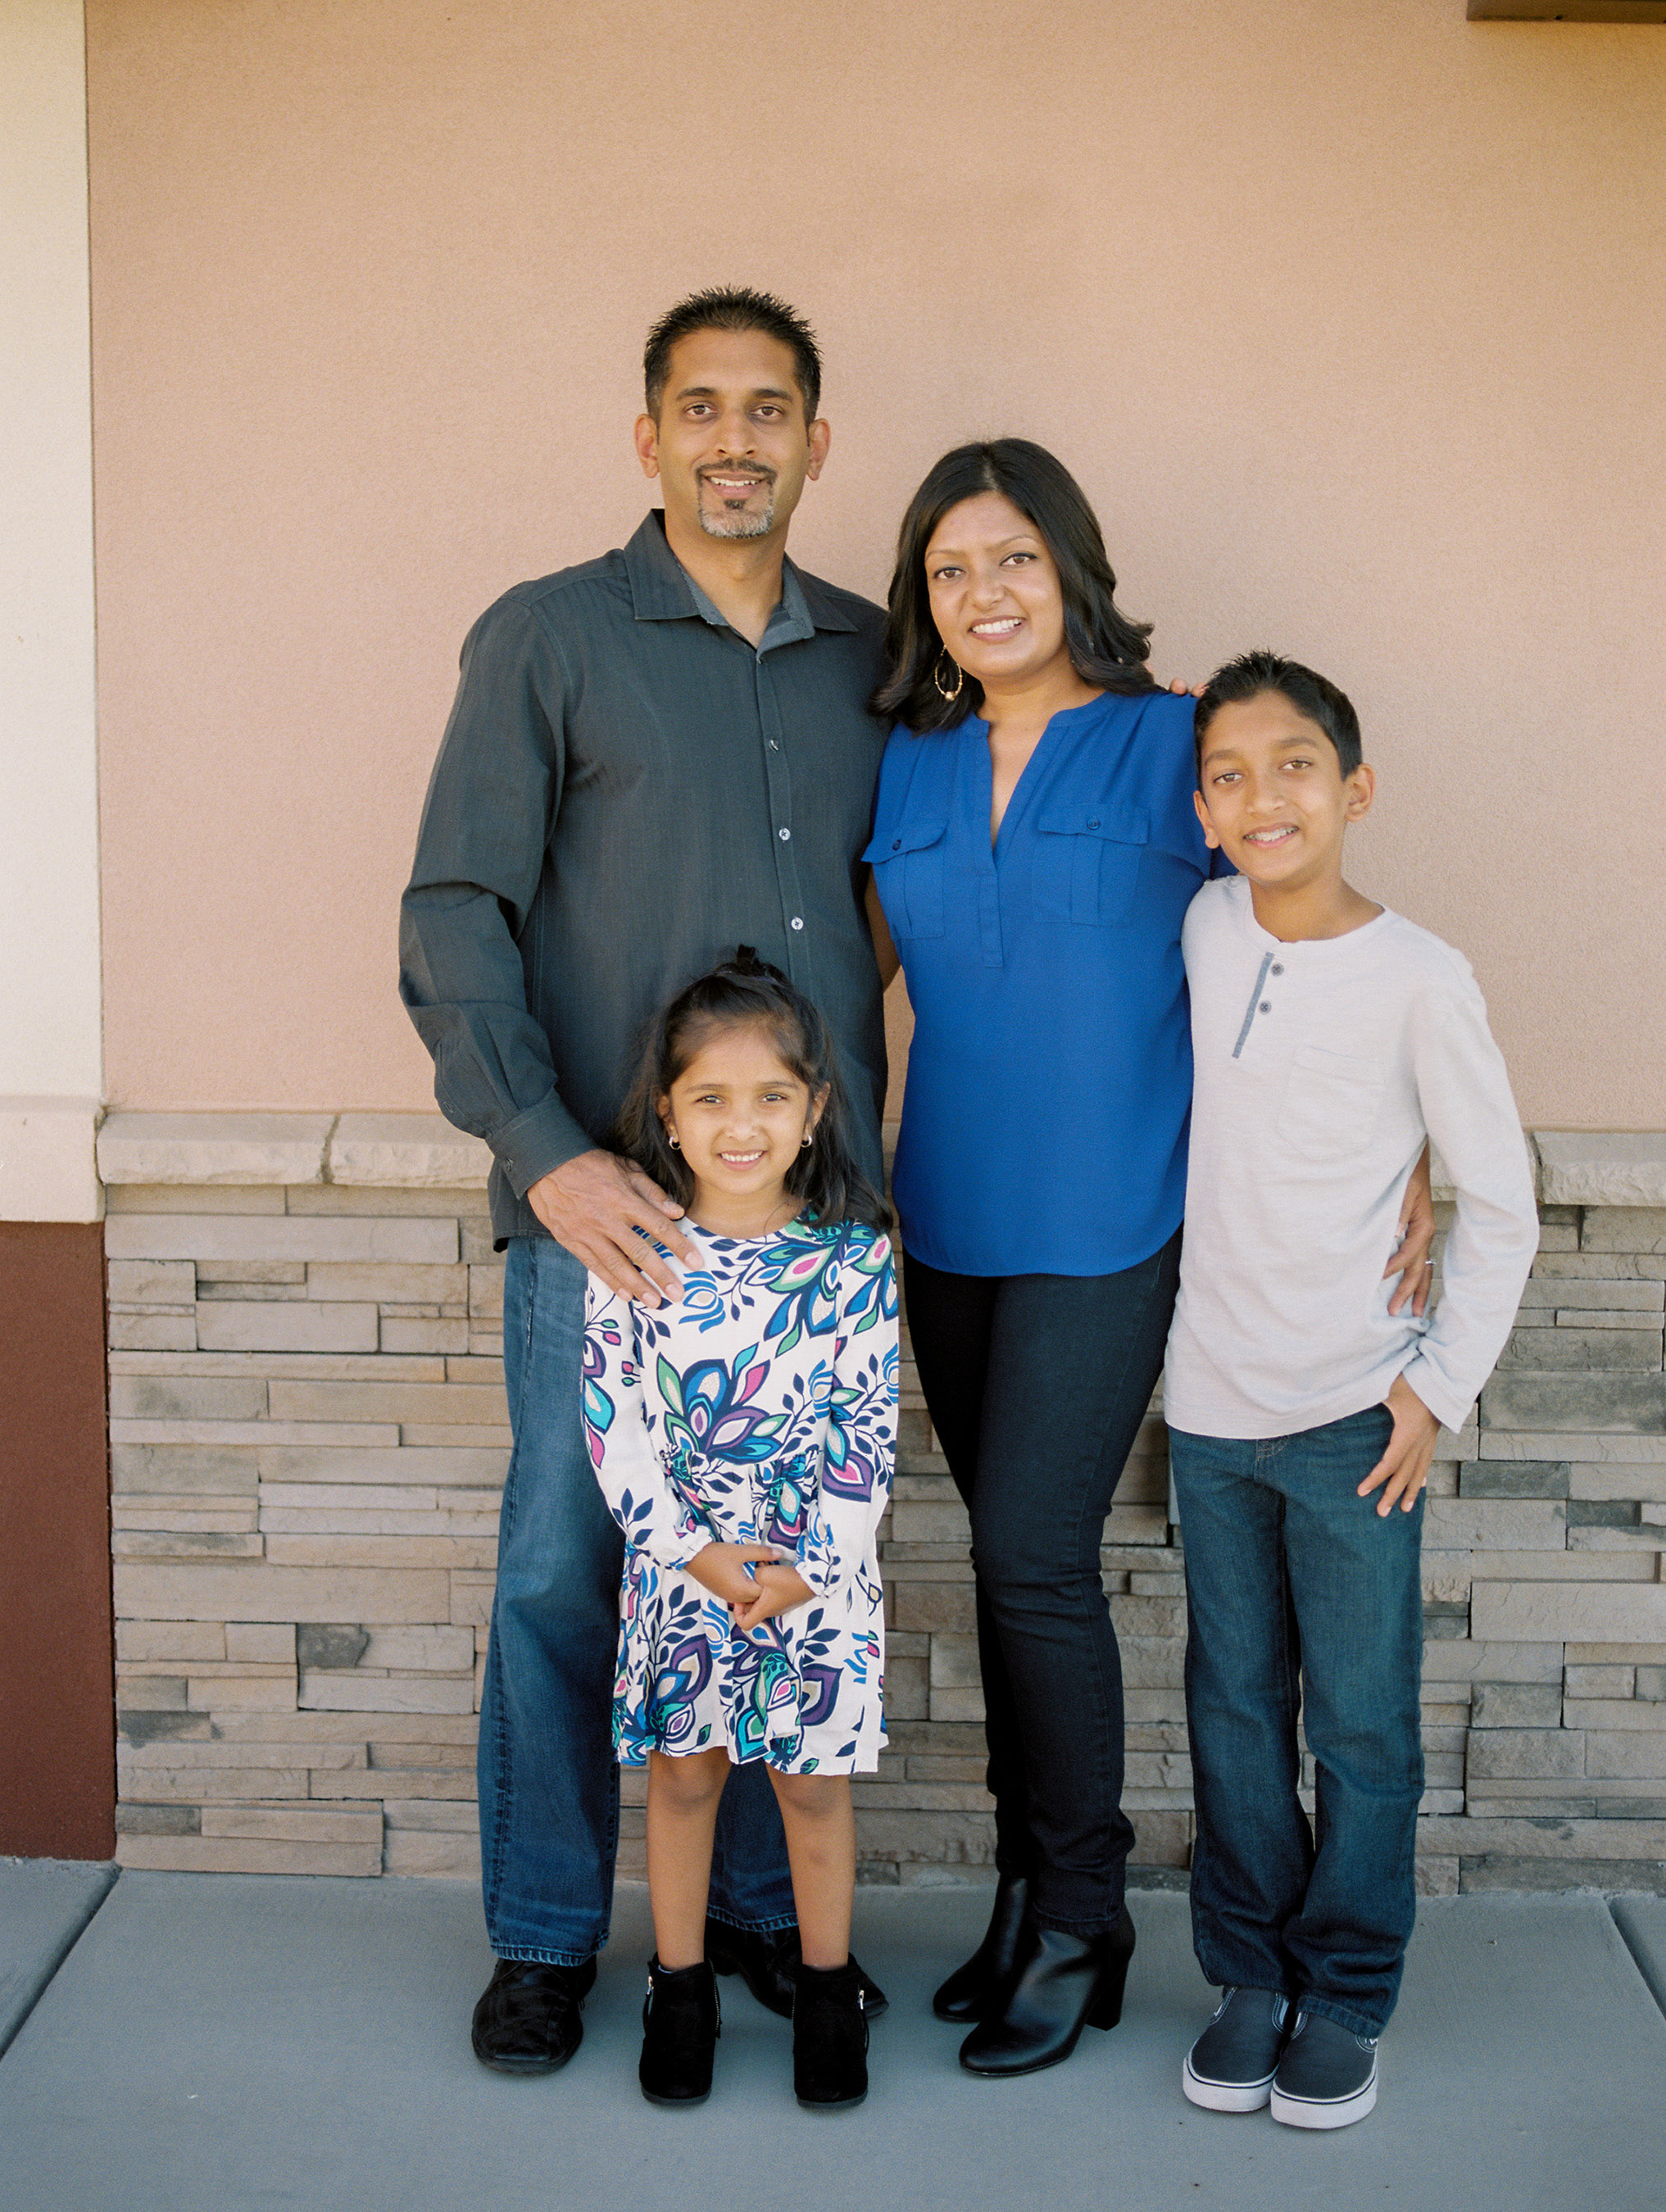 As parents and Franchise Owners, Jay and Malini Bhakta recognize the benefits of early education franchising for their investment portfolio and their community.